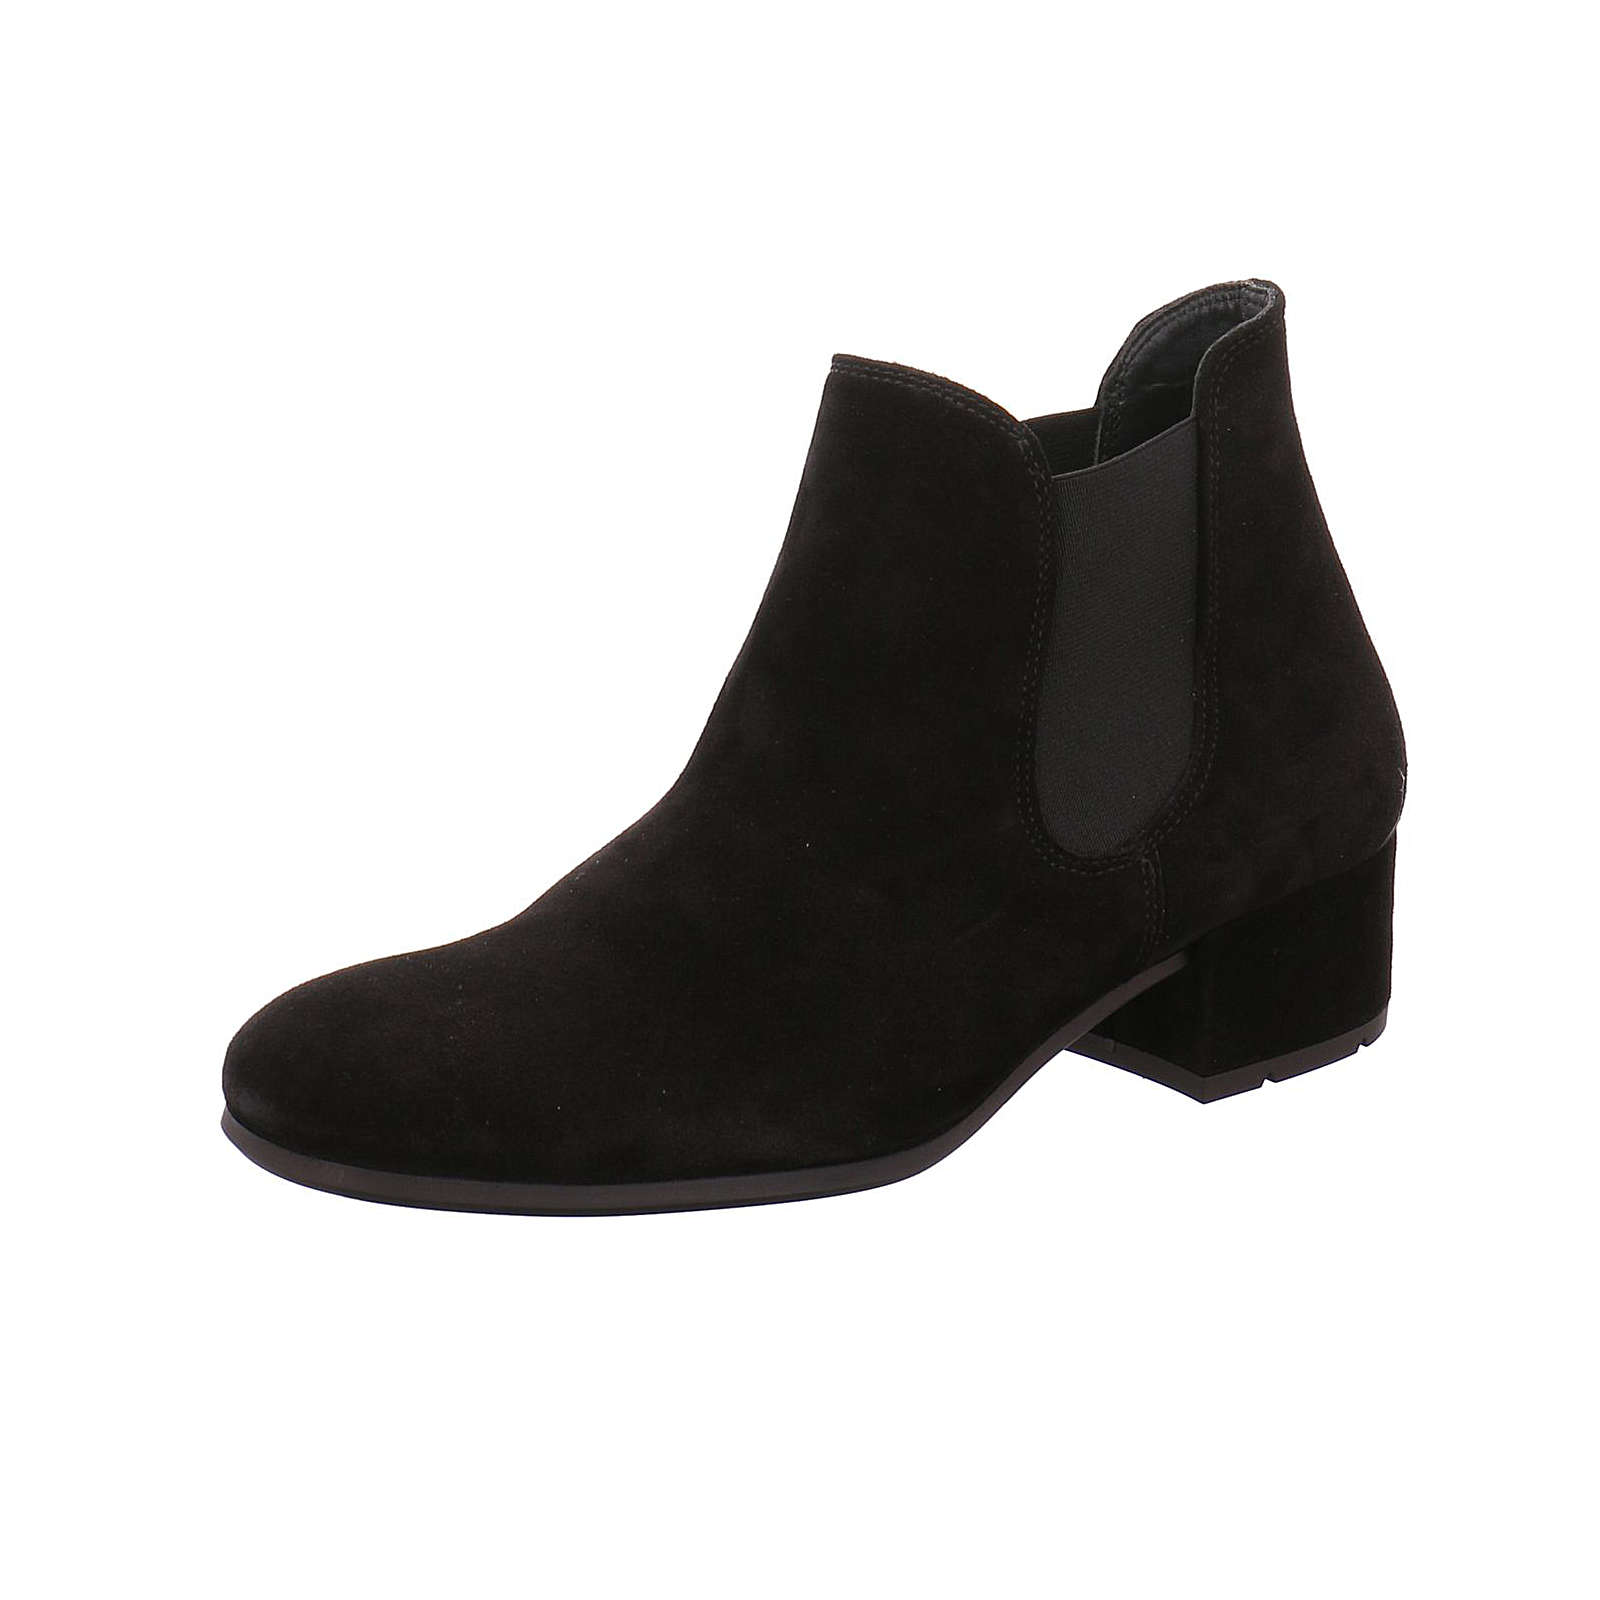 in stock 1b0df e01eb Paul Green Chelsea Boots schwarz Damen Gr. 38,5